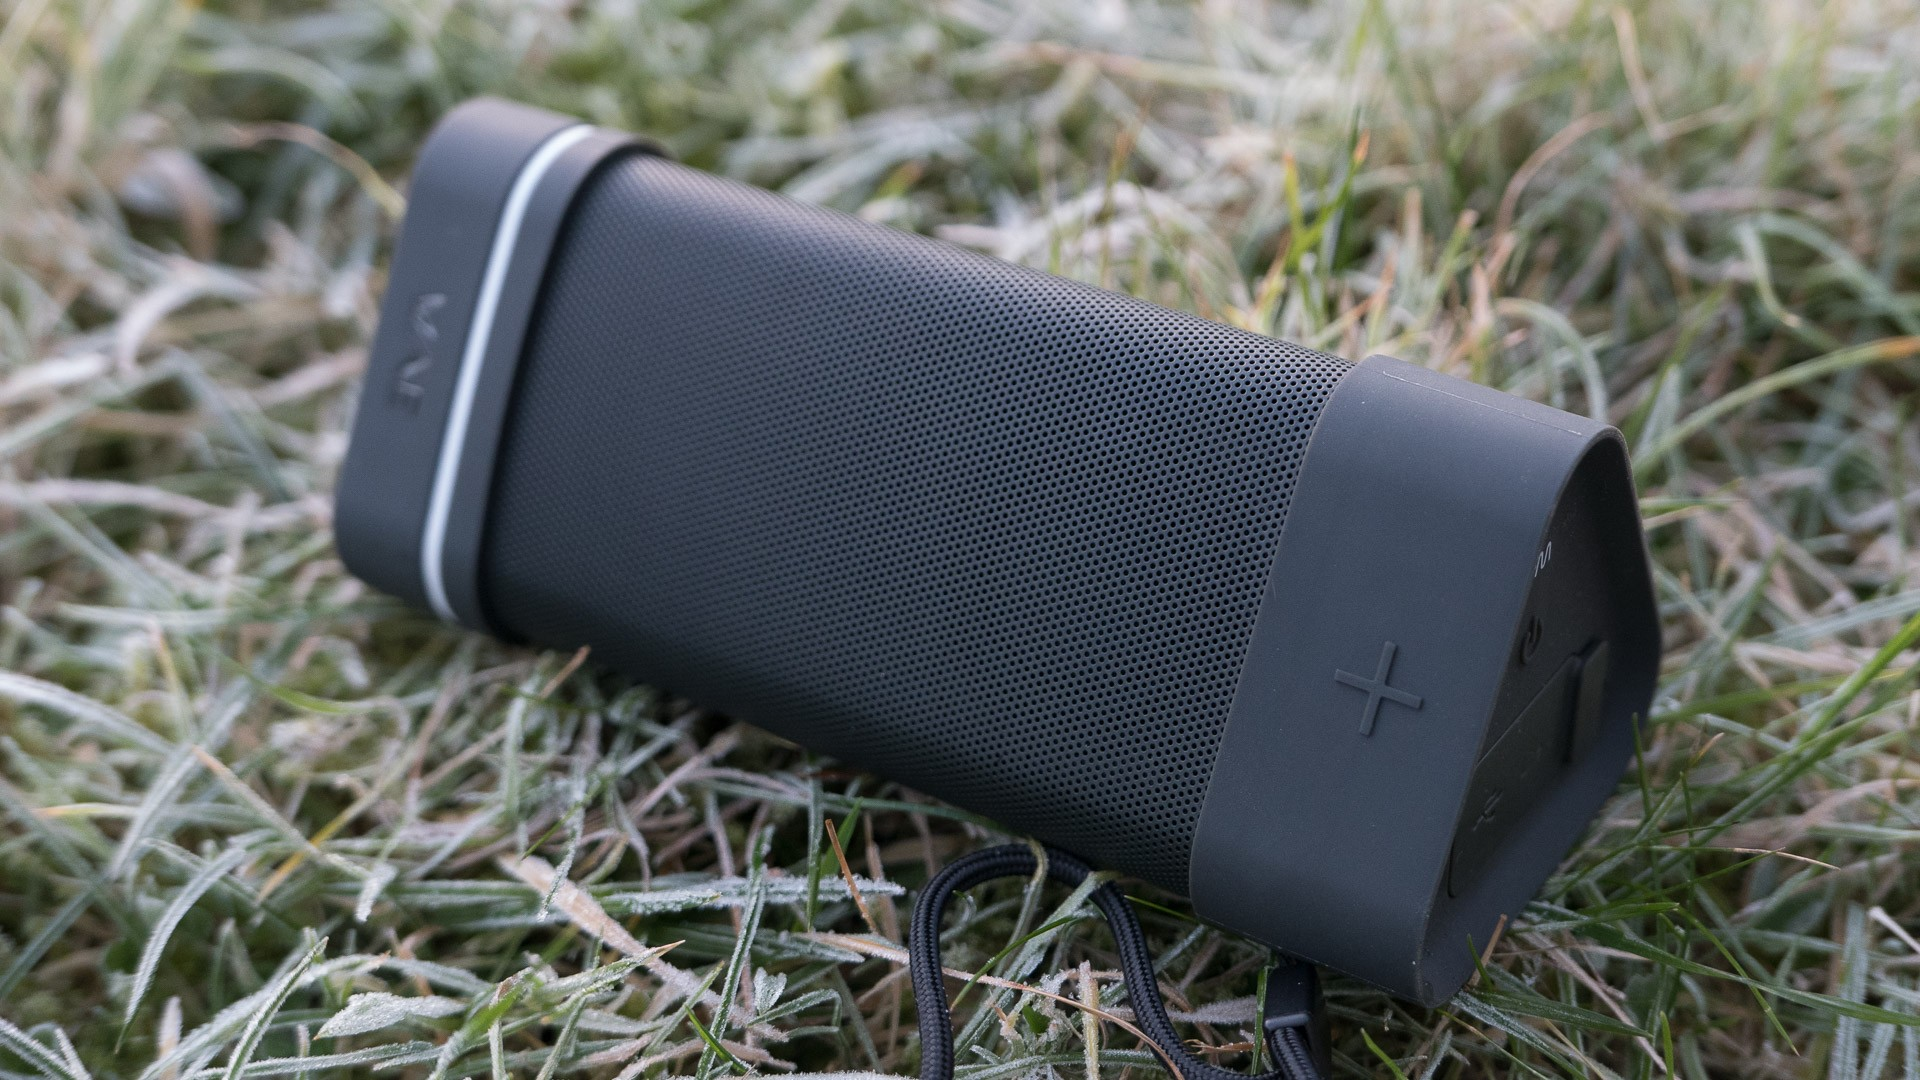 Need to kick out the jams? The Hercules speaker lets you do that on the trails